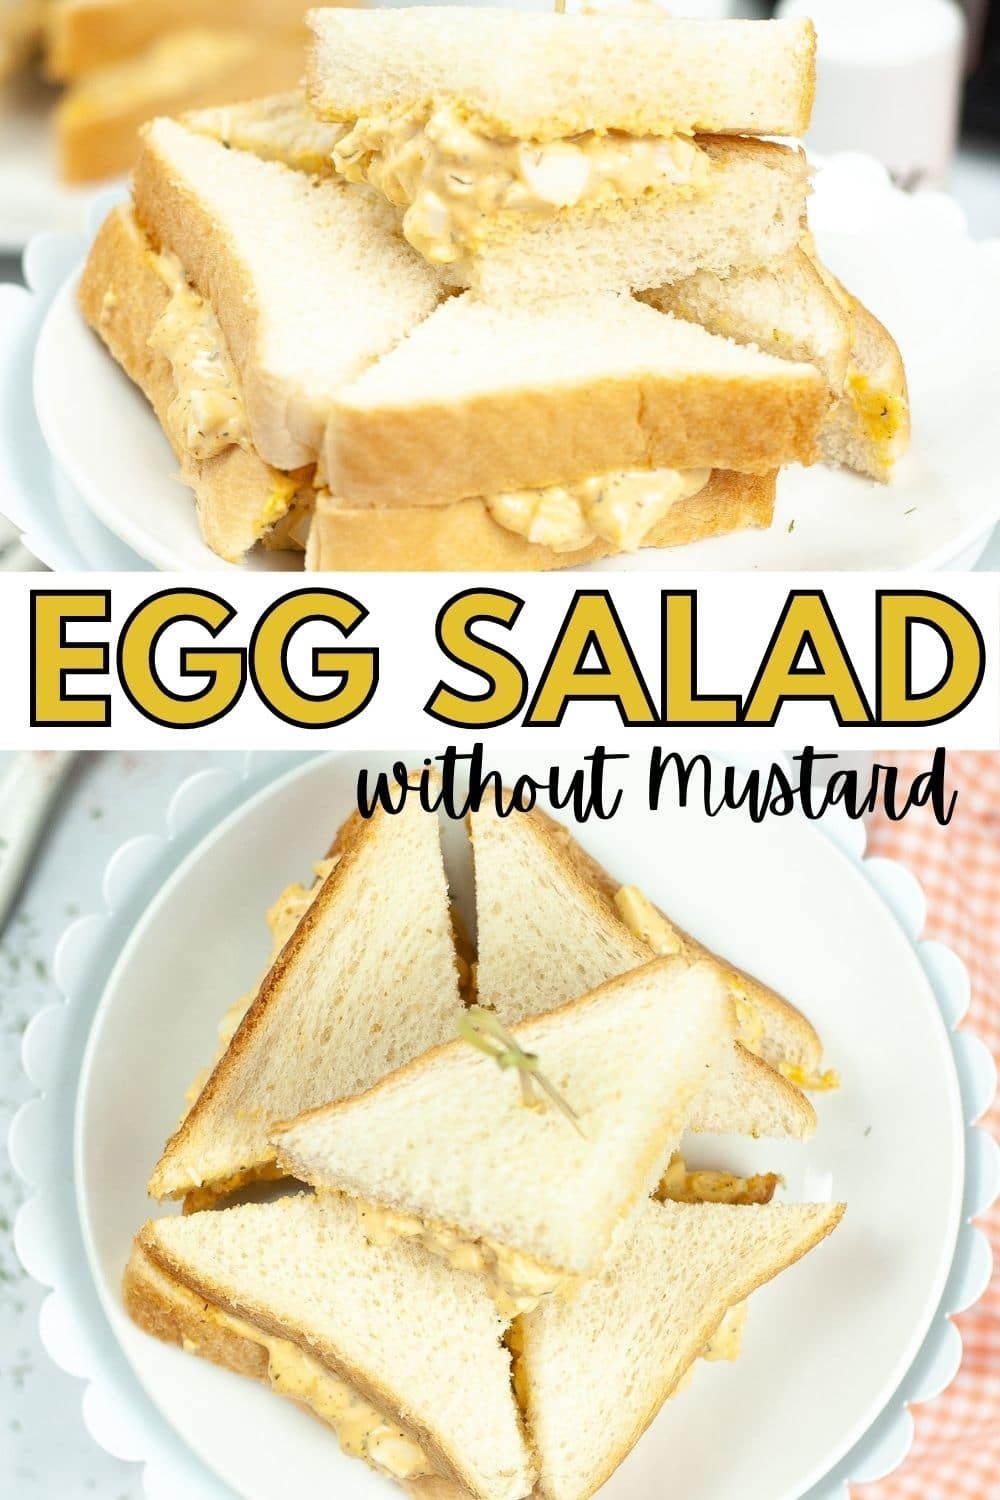 Sandwiches filled with Egg Salad Without Mustard come together quickly with Air Fryer Hard Boiled Eggs. Lots of flavor but not too spicy! #airfryer #eggsalad #lunchrecipe #hardboiledeggs via @wondermomwannab